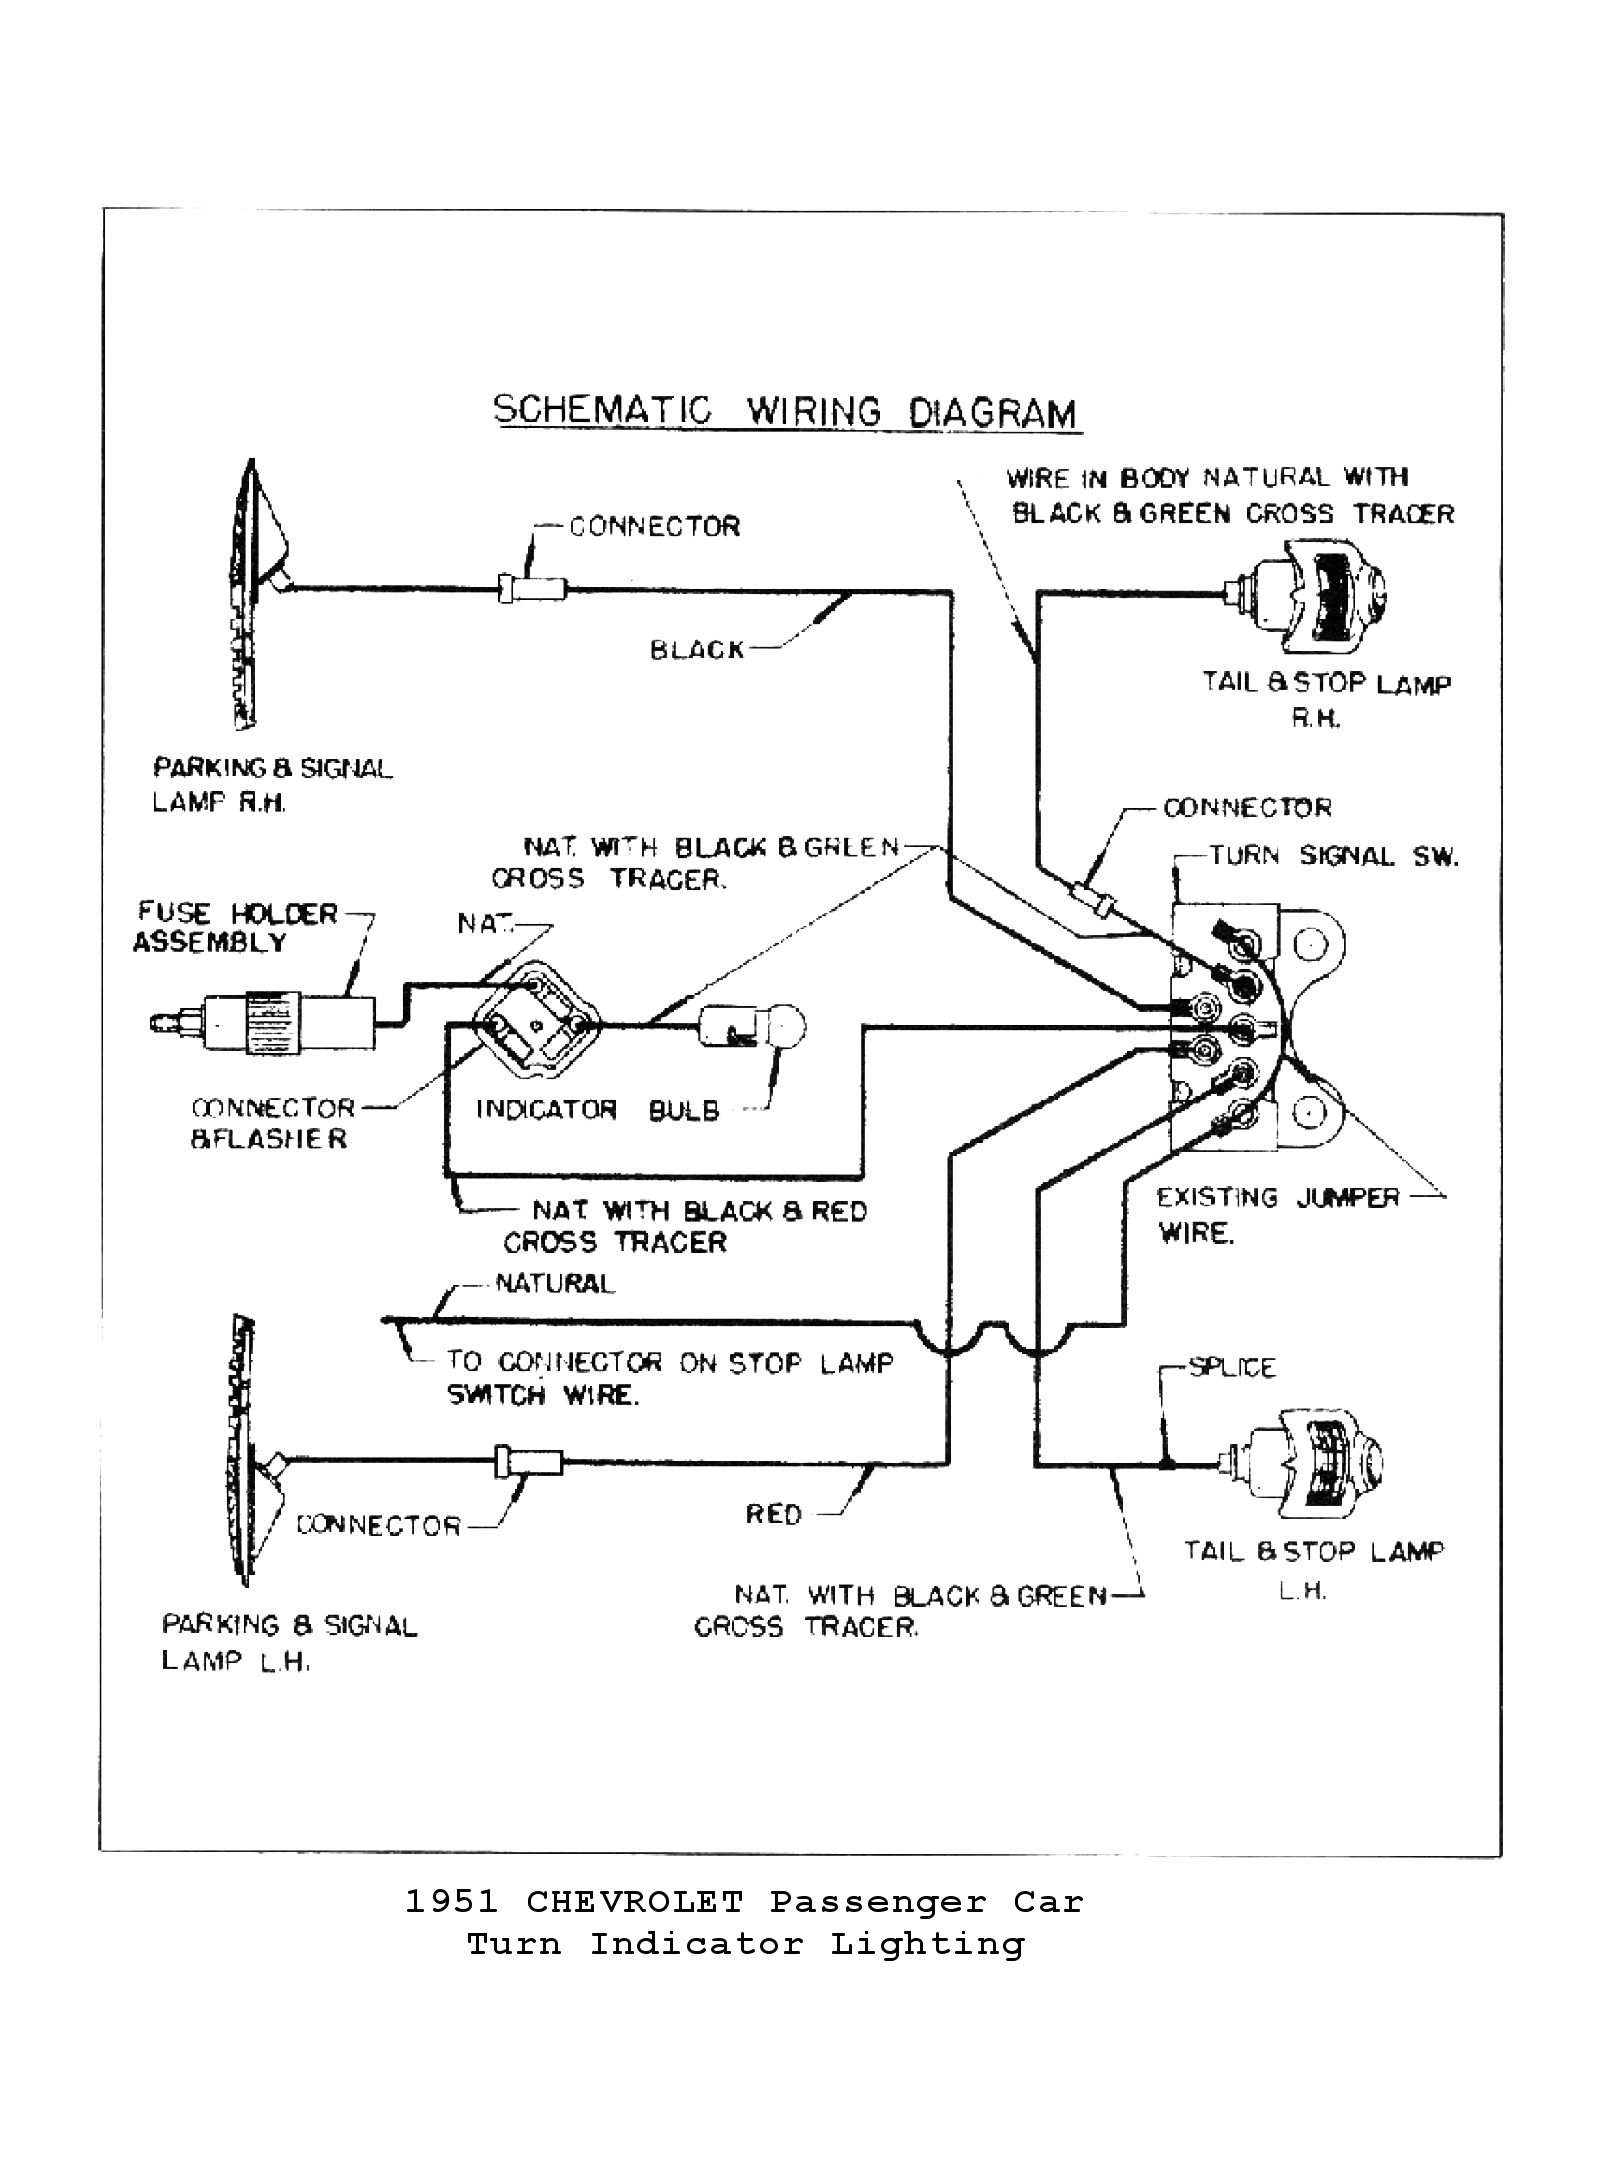 Chevy Wiring Diagrams Truck Trailer Light Diagram 1951 Directional Signals